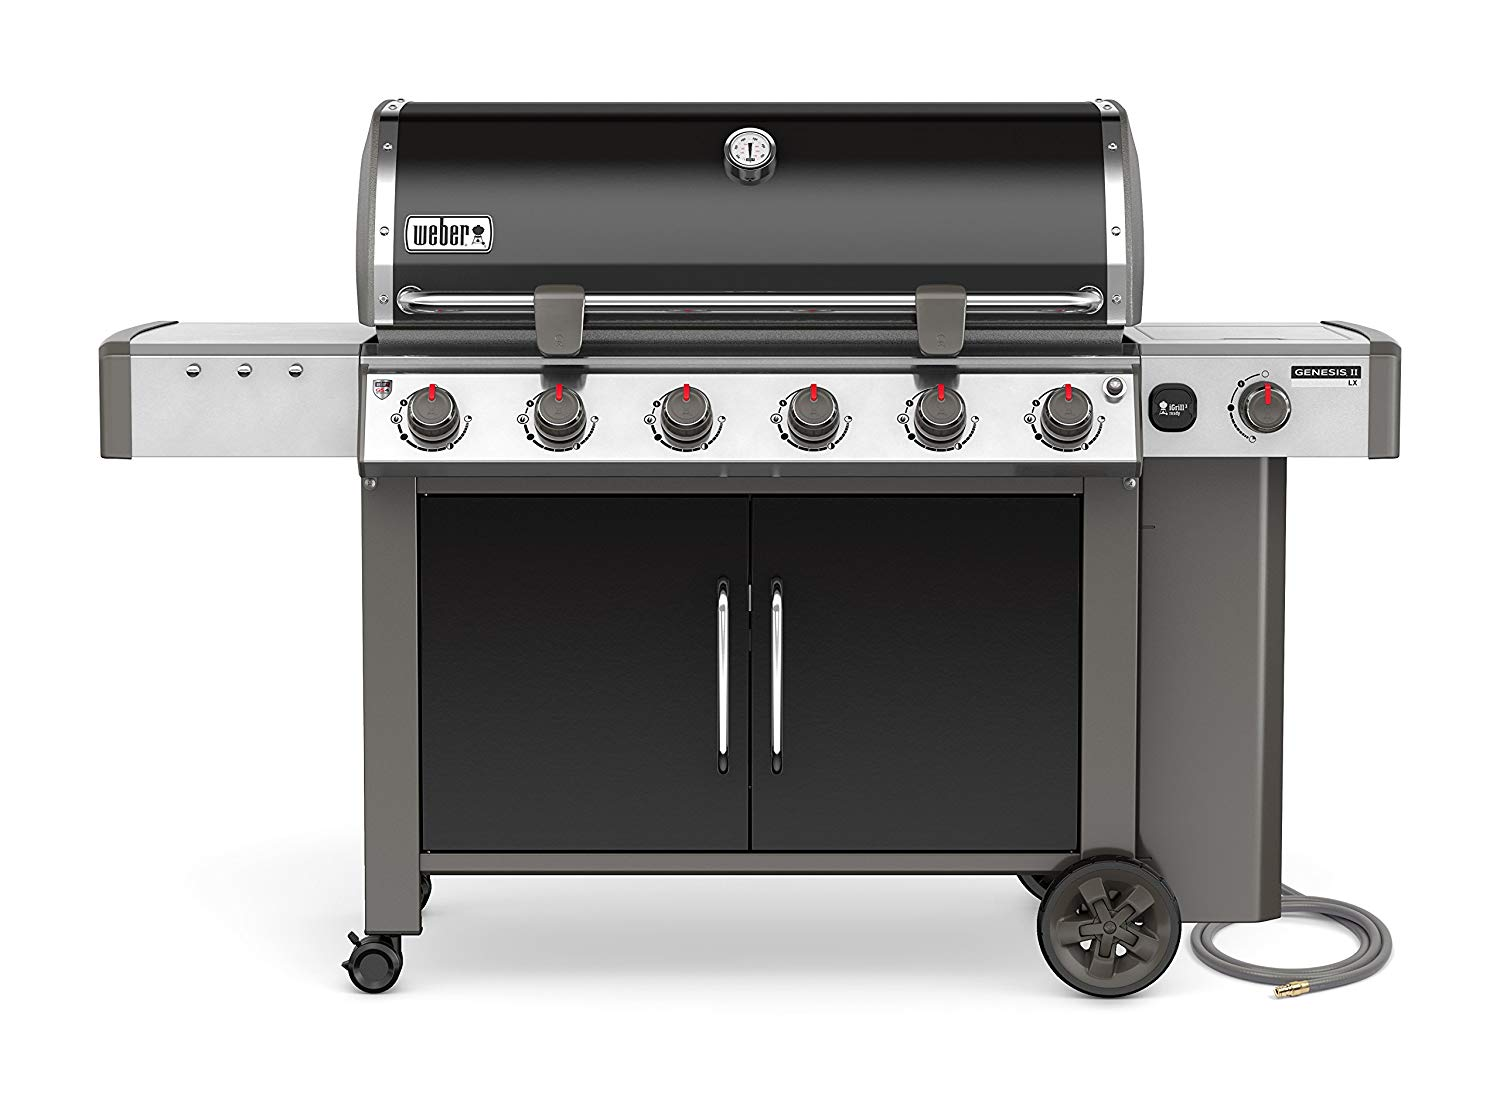 Weber Genesis II LX E-640 Natural Gas Grill Review